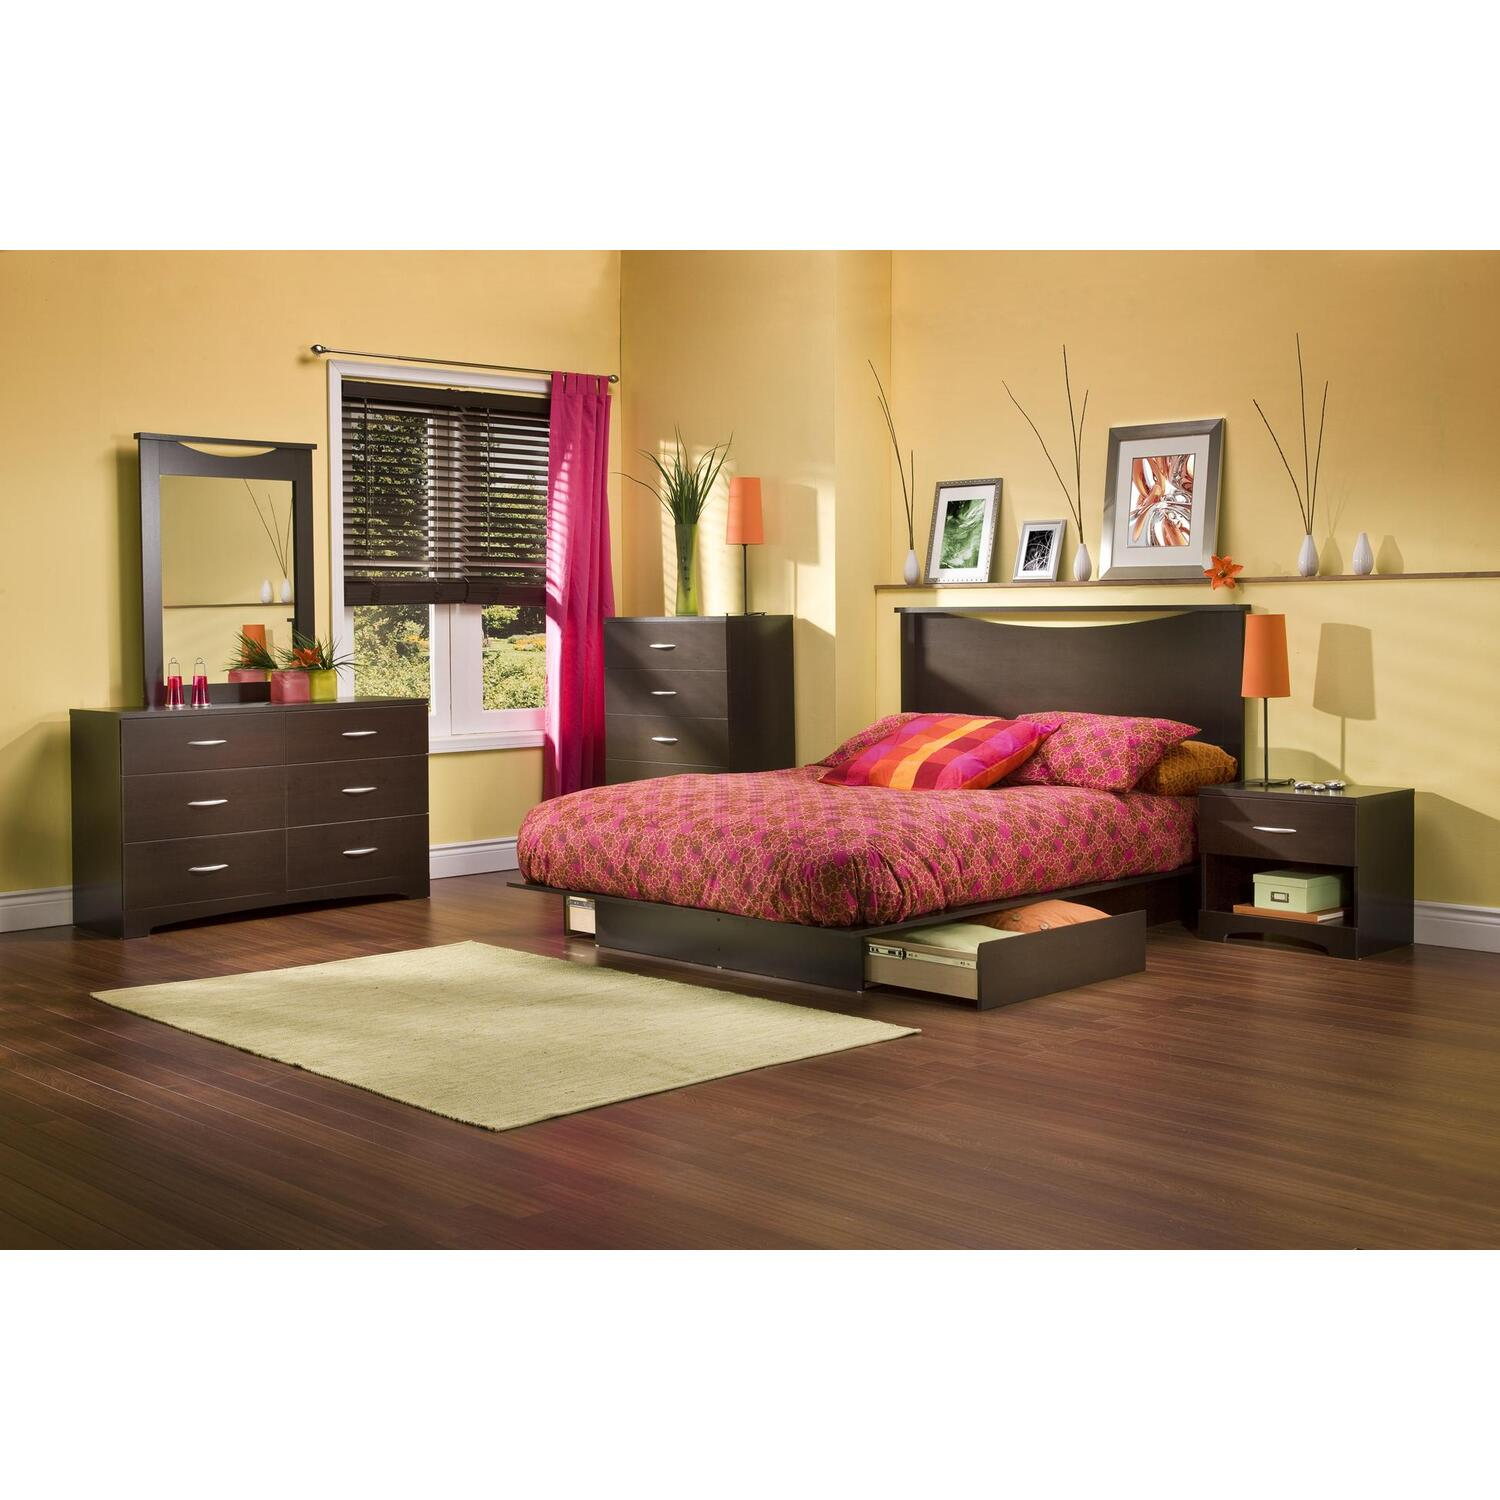 Furniture home goods appliances athletic gear fitness for Bed set queen furniture